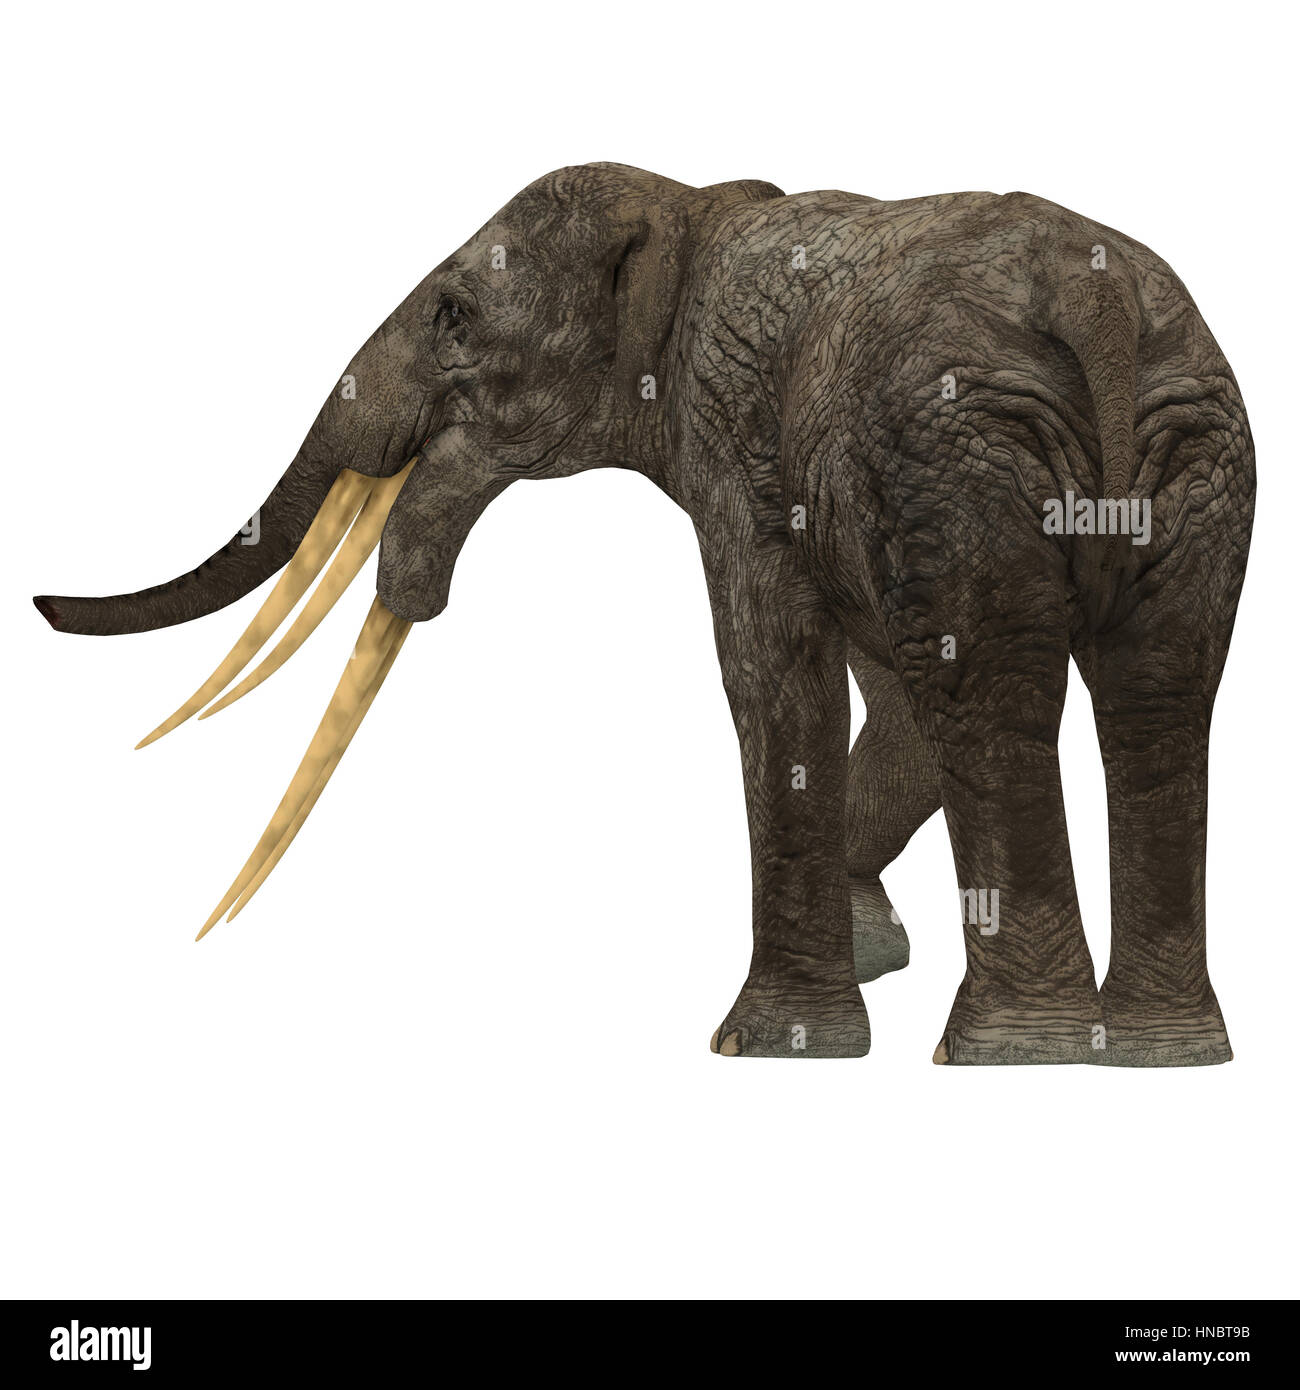 stegotetrabelodon was an elephant that lived in the miocene and